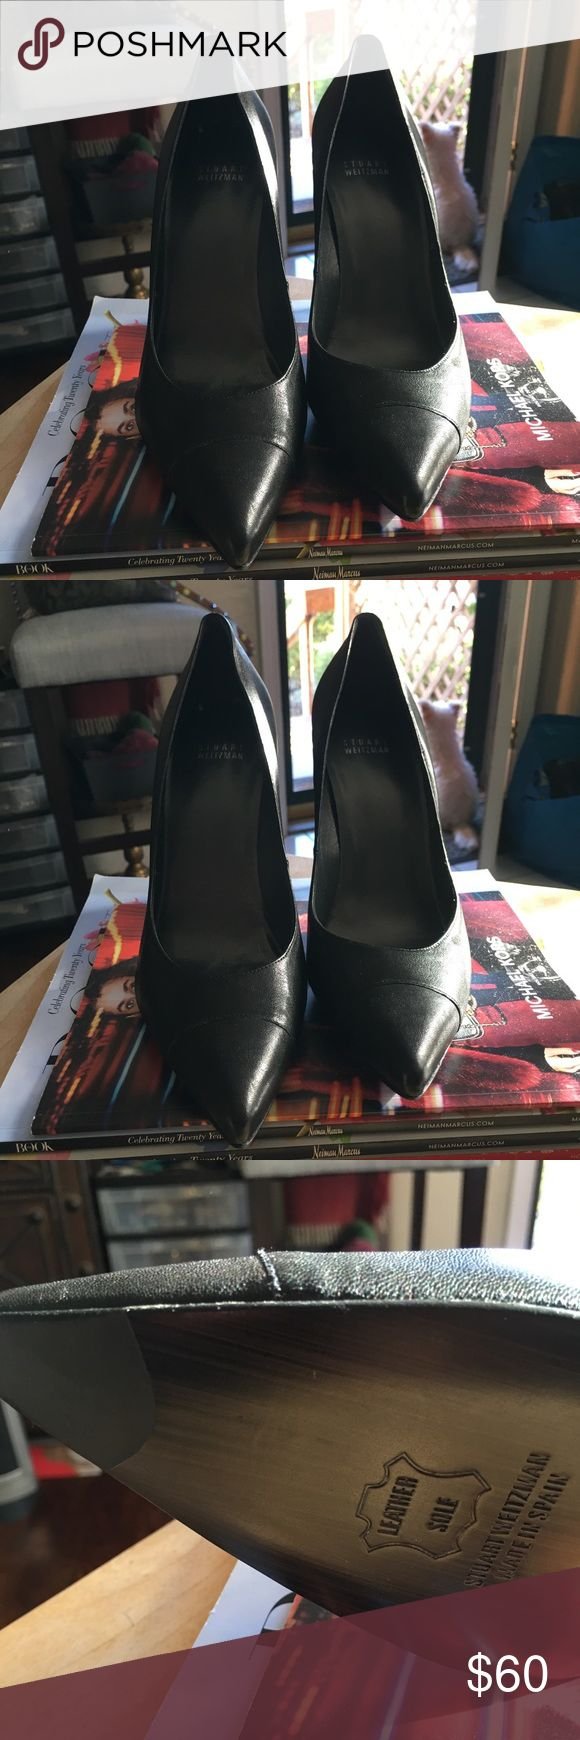 Stuart Wiseman Pumps. NWOT Brand new classic black Stuart Wiseman pumps. They have a great cap toe detail and a nice thick heel that helps with comfort. There is a sleek pointed toe and light padding in the heel and ball of the foot. They are a narrow width and 4 1/2 inch heel height. Stuart Weitzman Shoes Heels